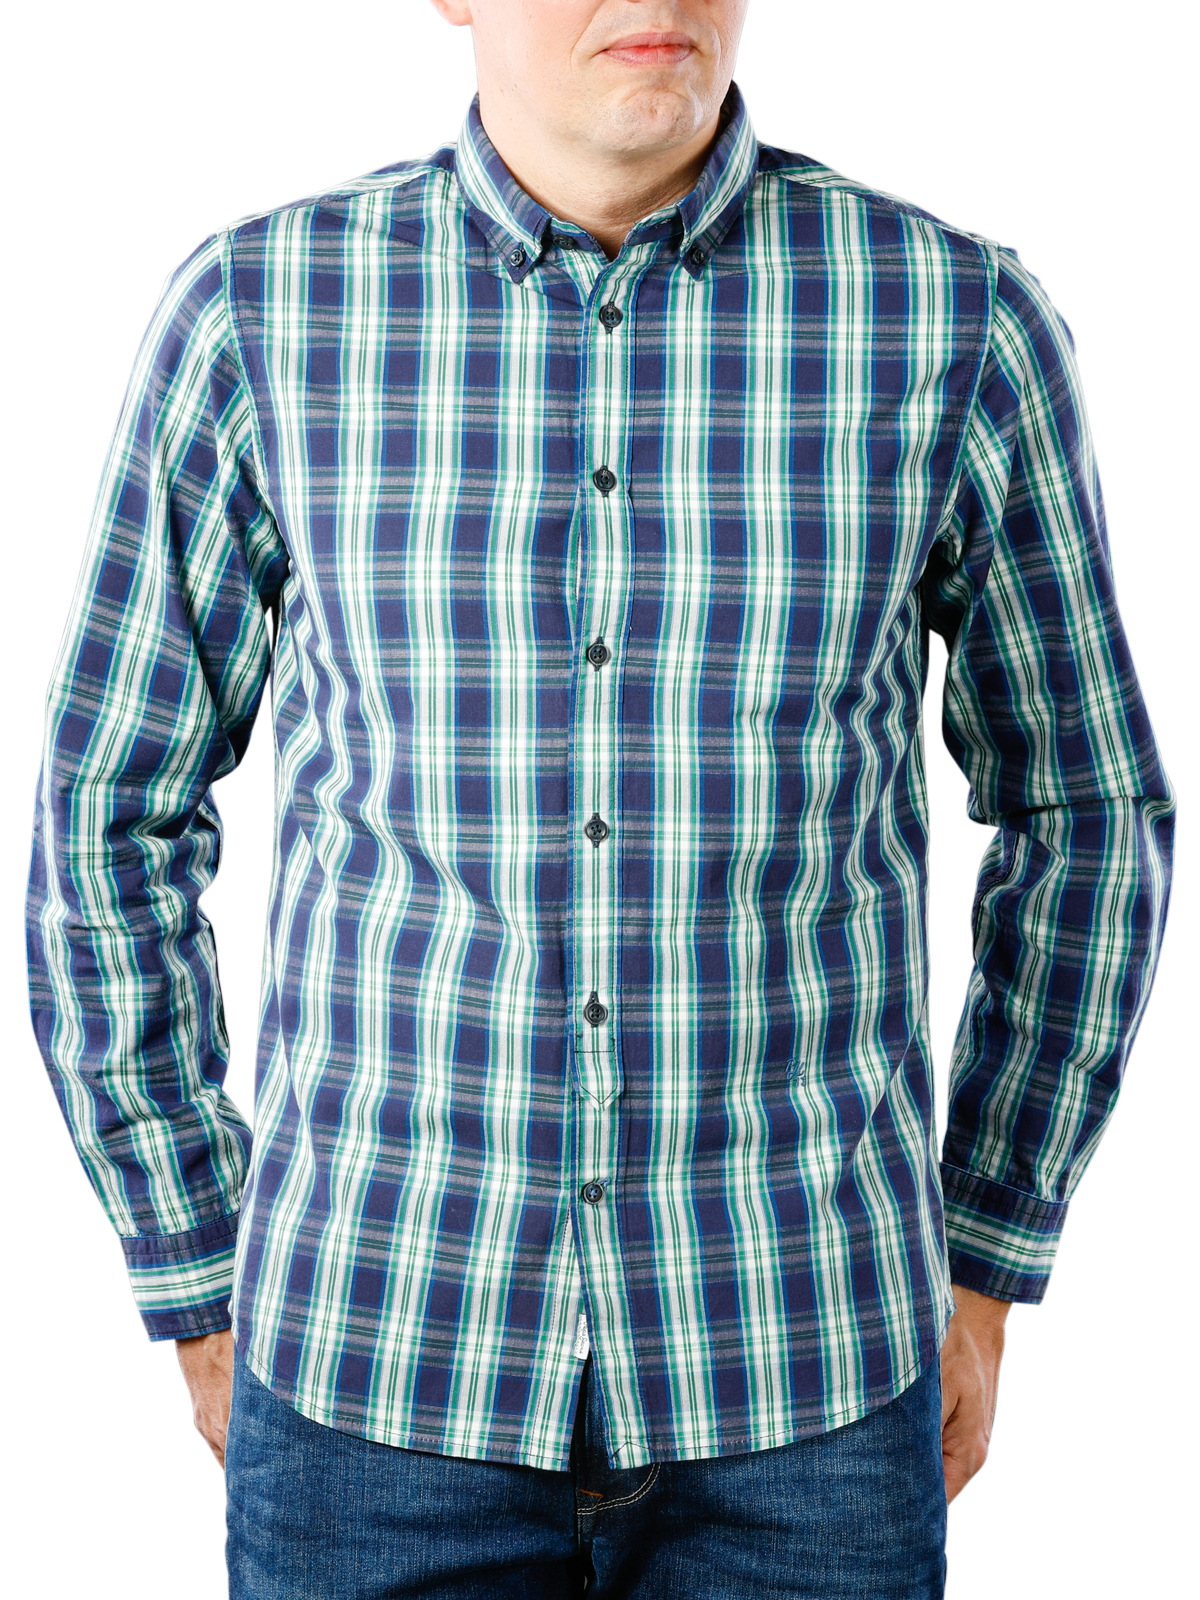 Mcjeans Ch Fast Delivery Pepe Jeans Chandler Compact Poplin Check Shirt Blueing Free Shipping Free Returns